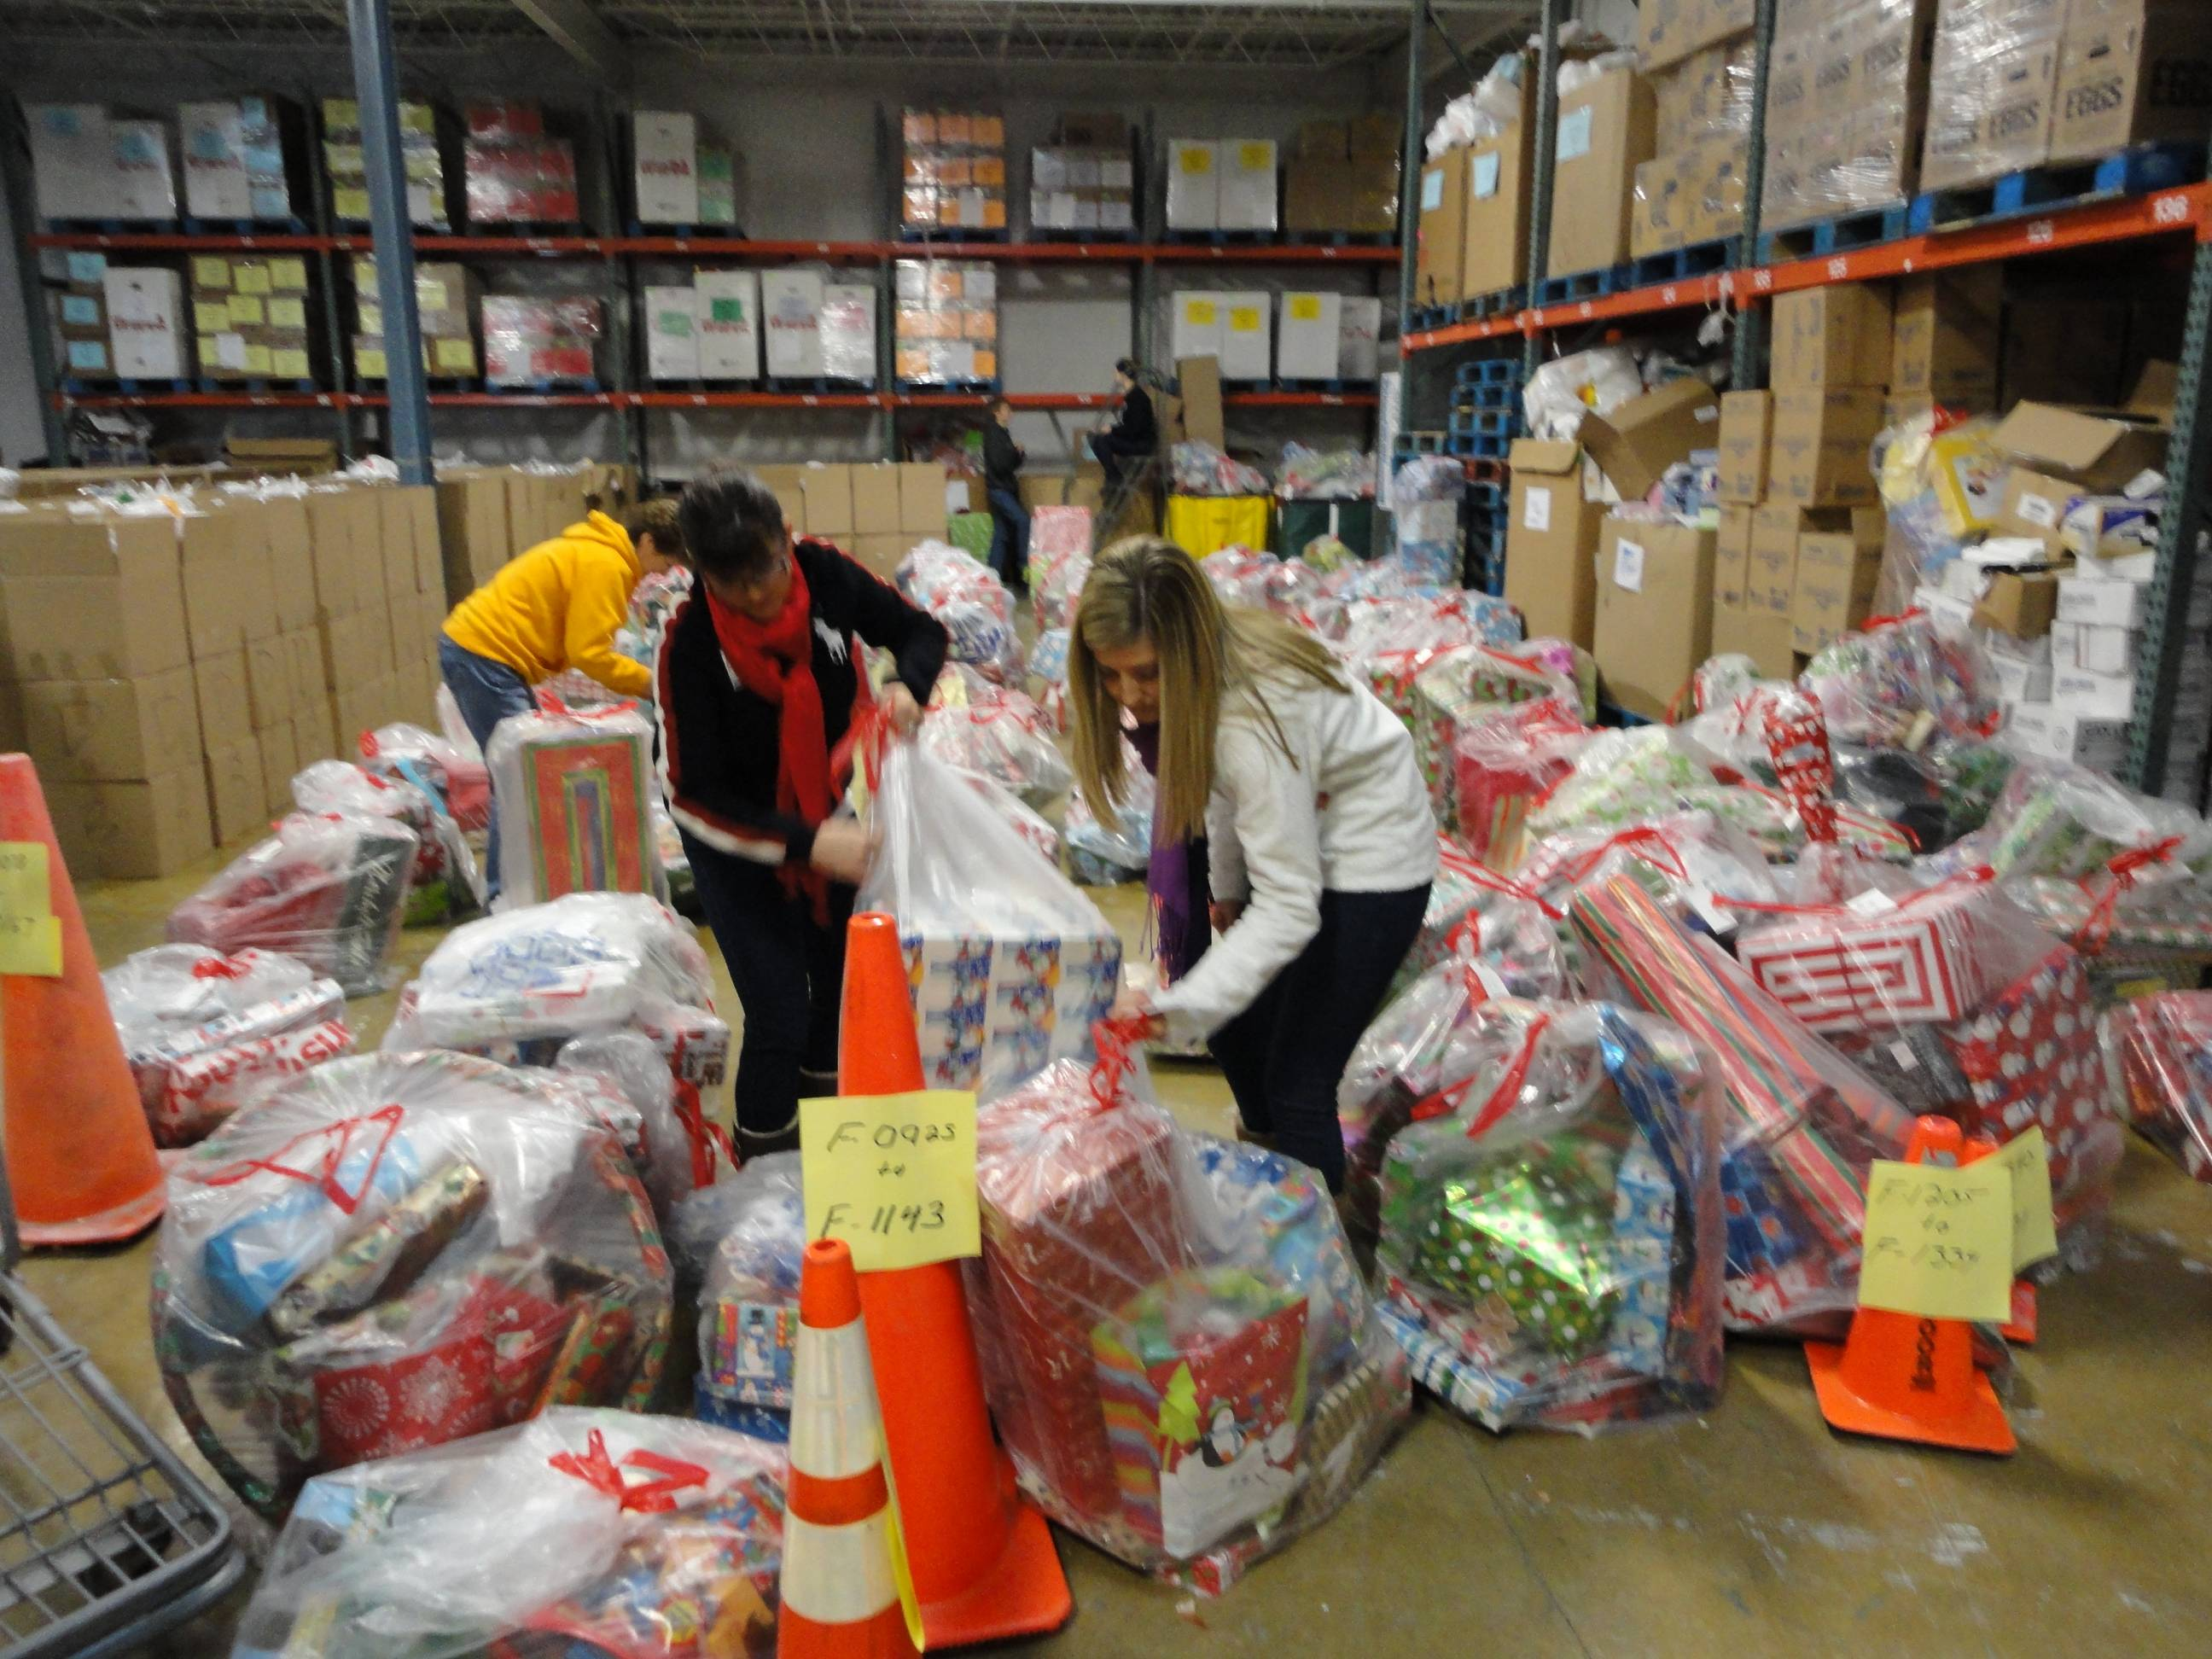 HSP volunteers preparing gifts to be distributed to needy children.